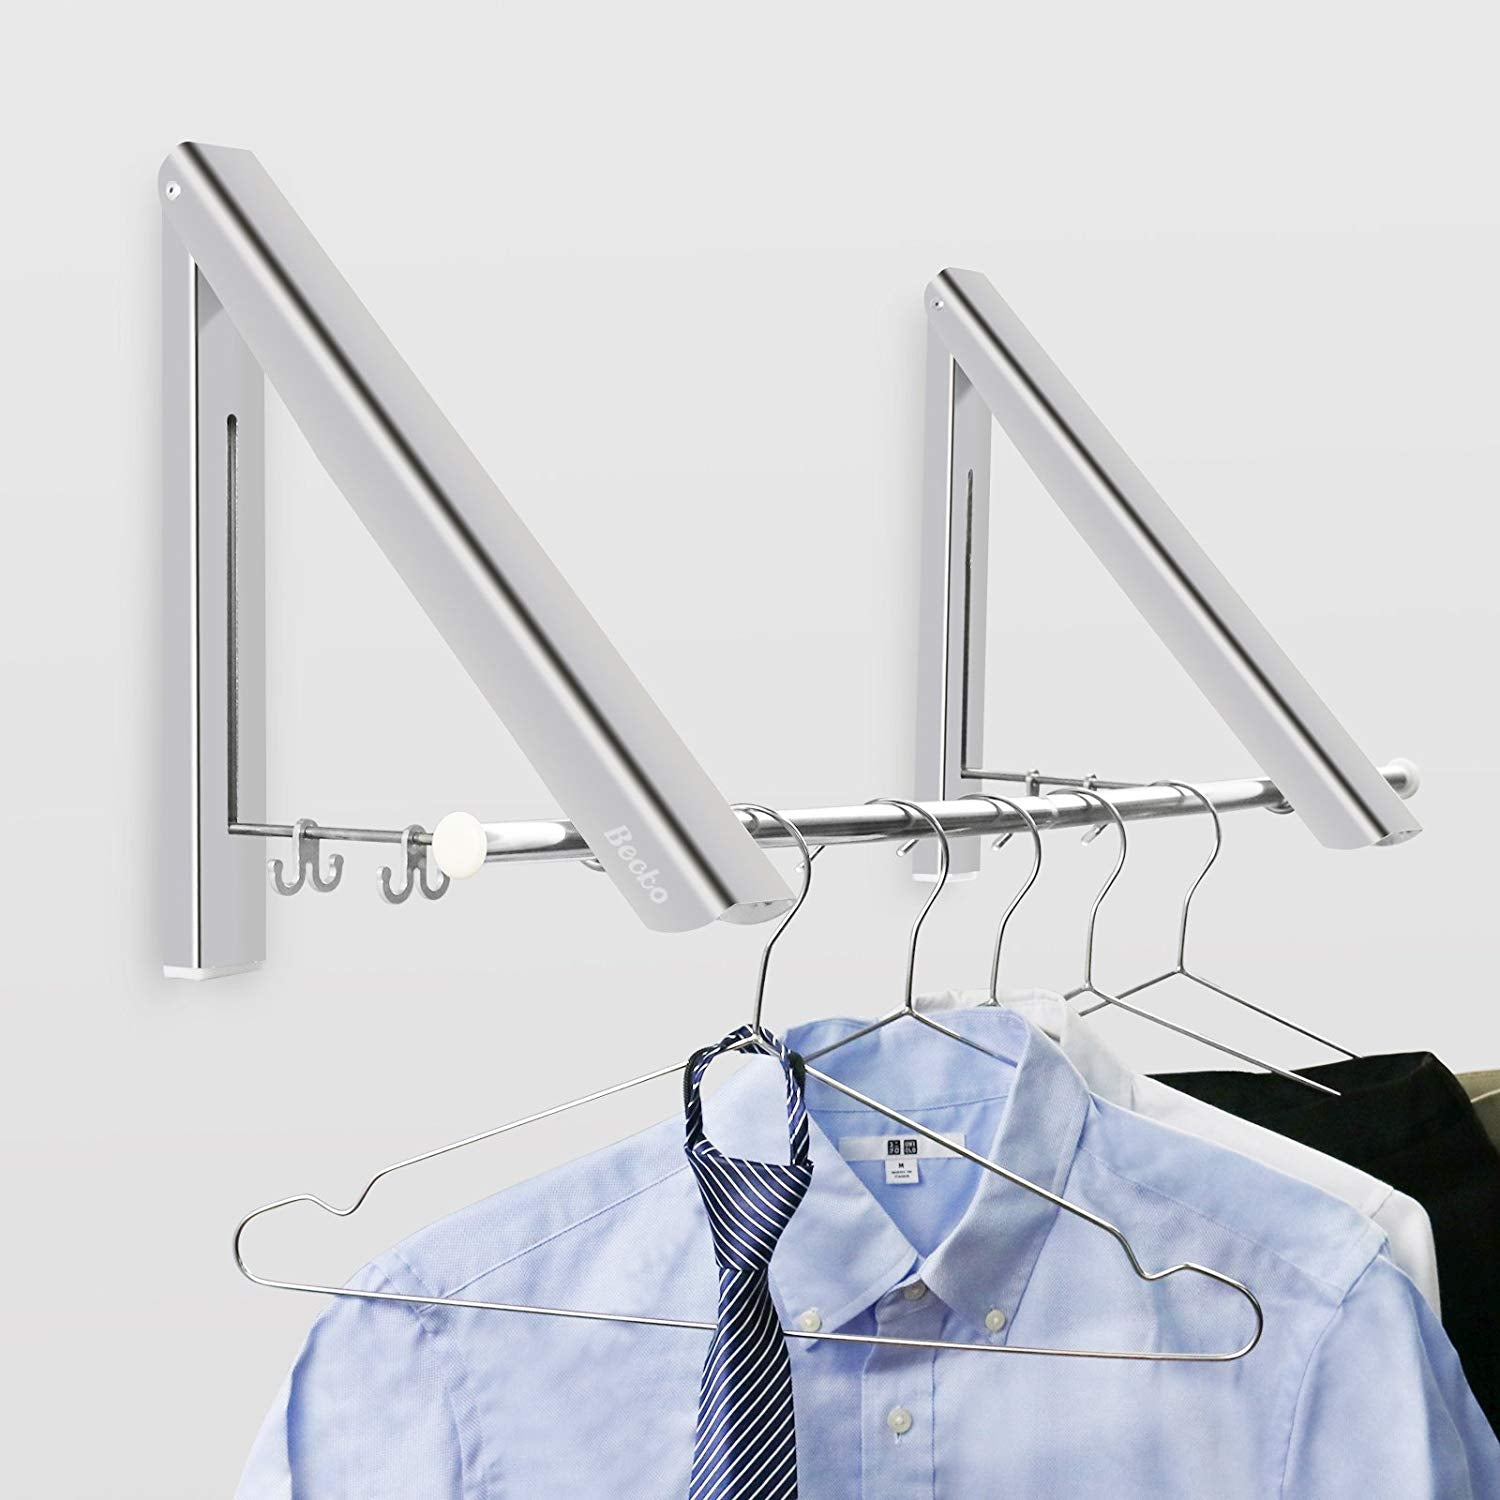 Becko Wall Mounted Clothes Hanger Aluminum Folding Drying Coat Racks Home Storage Organiser 2 Packs